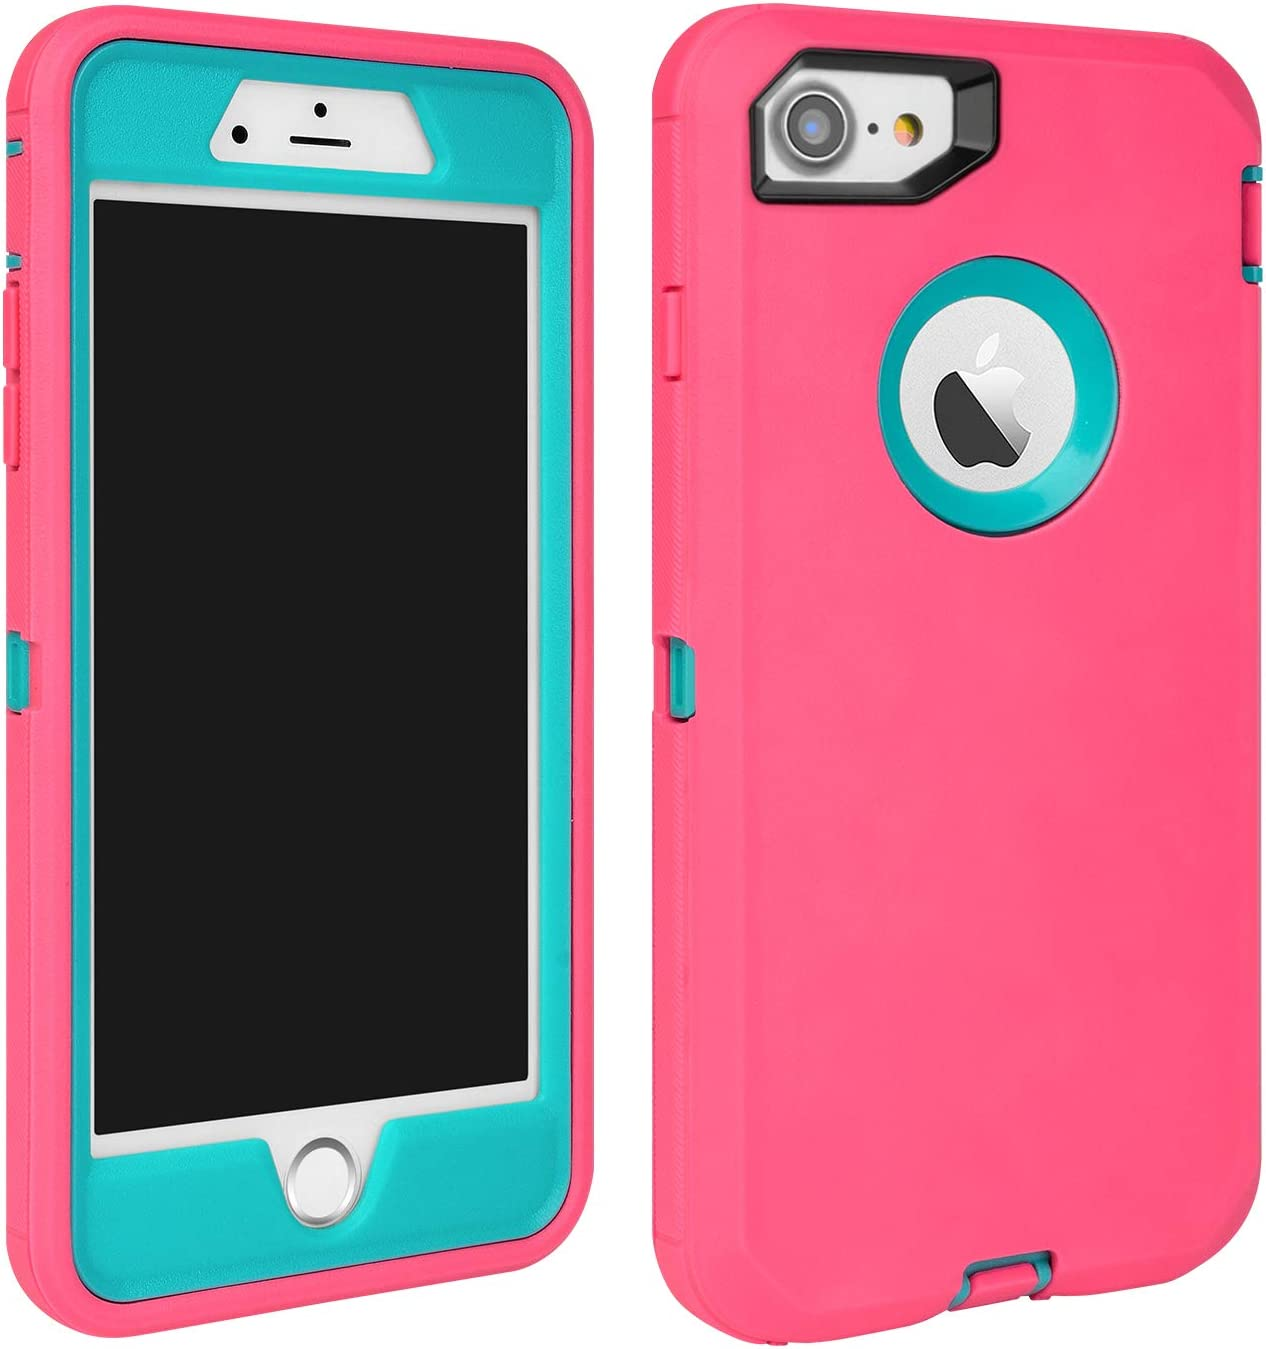 MAXCURY iPhone 7 Defender Case, iPhone 8 Case, Heavy Duty Shockproof Series Case for iPhone 7/8 (4.7